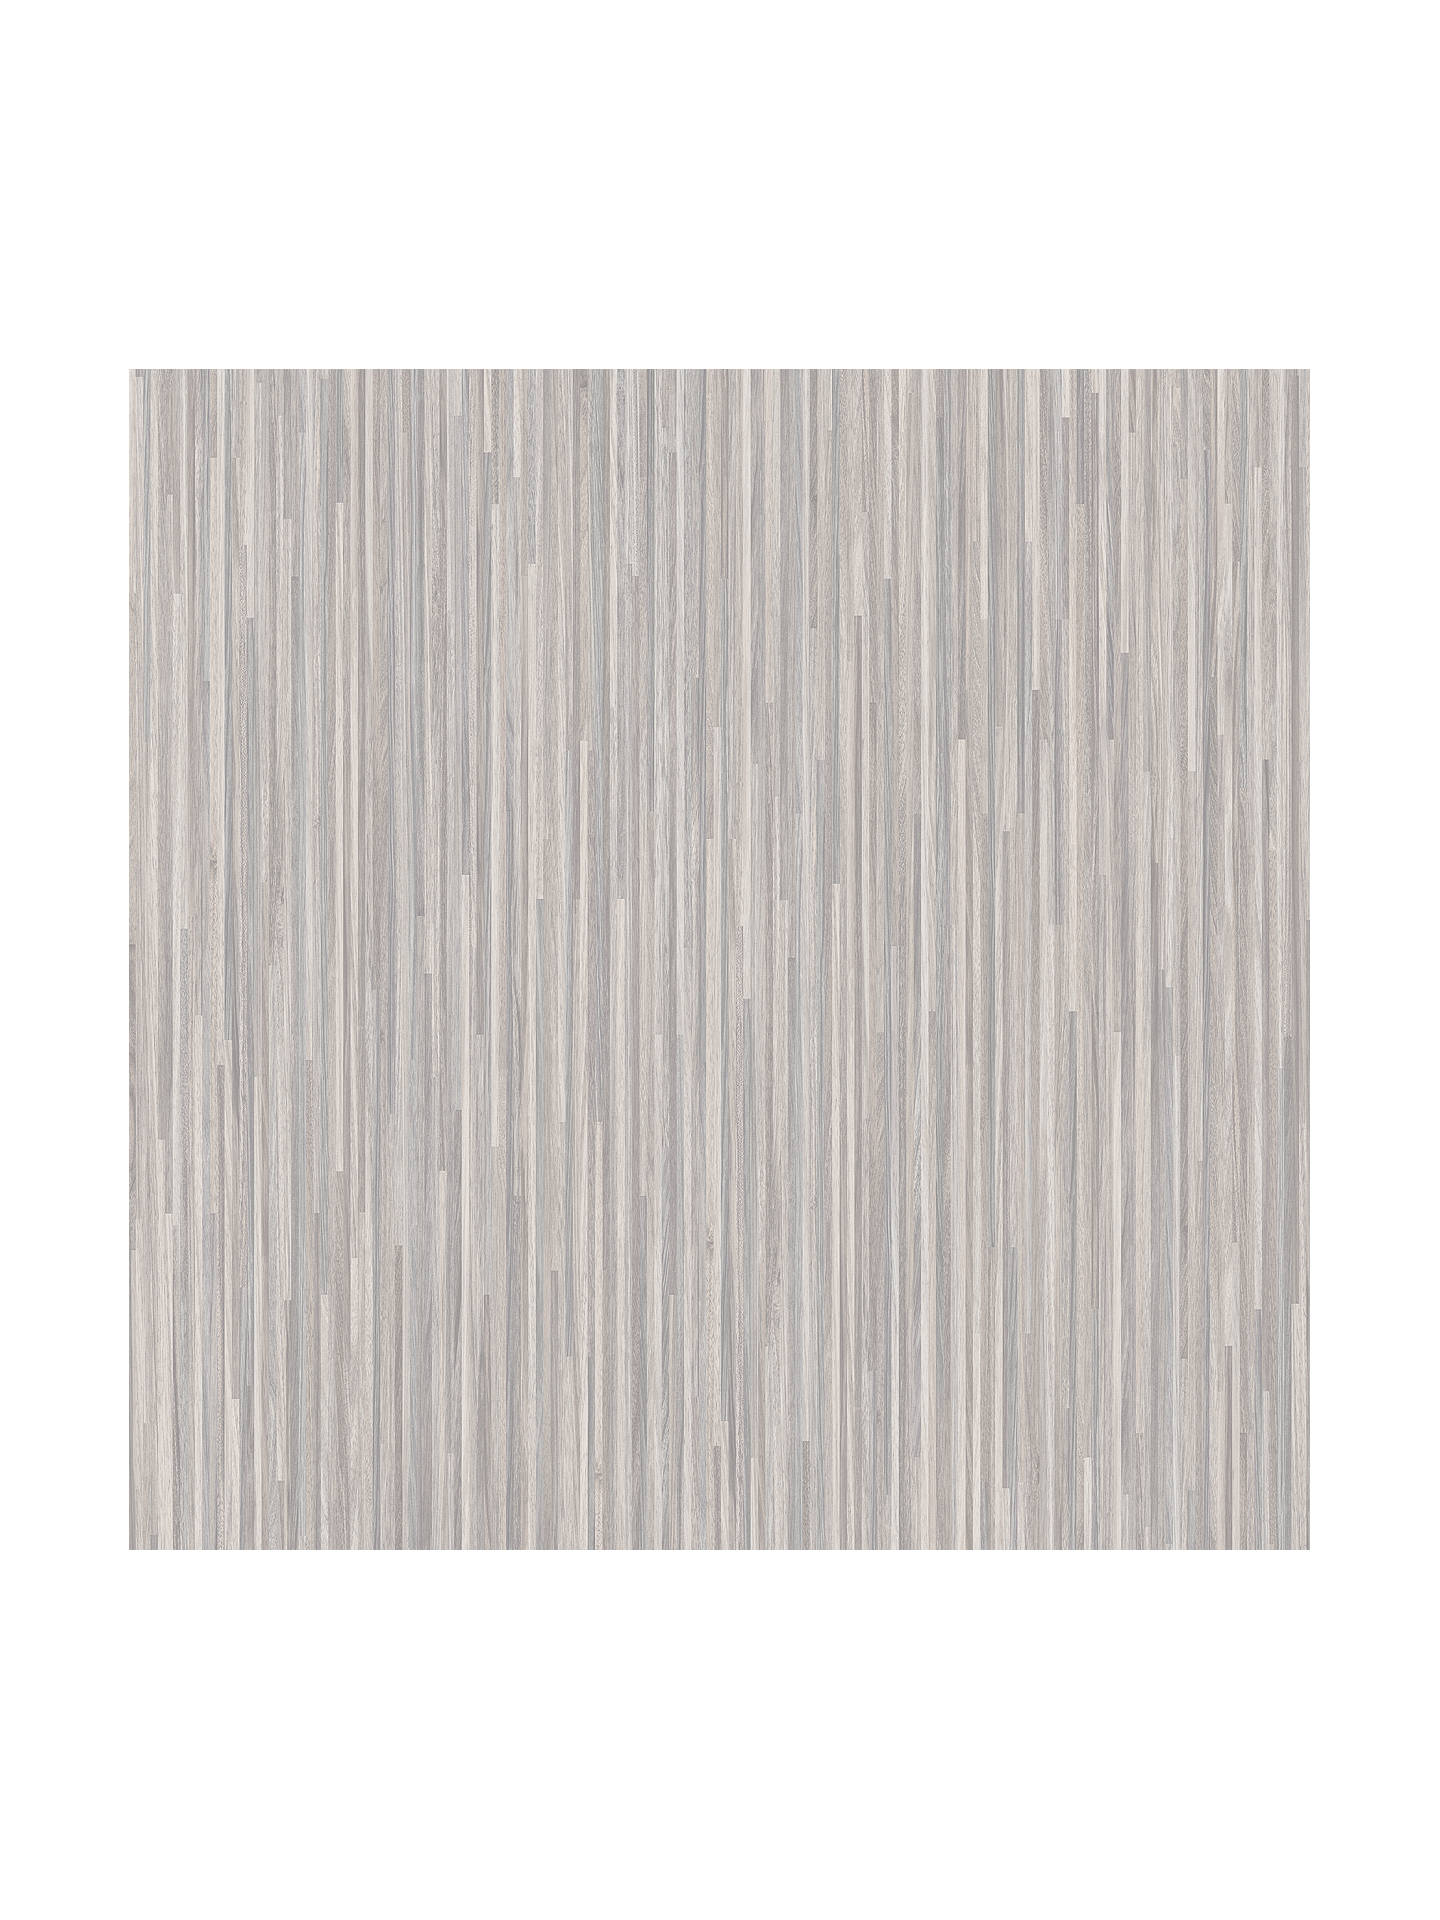 BuyJohn Lewis & Partners Design Elite 15 Vinyl Flooring, Cl/107 Online at johnlewis.com